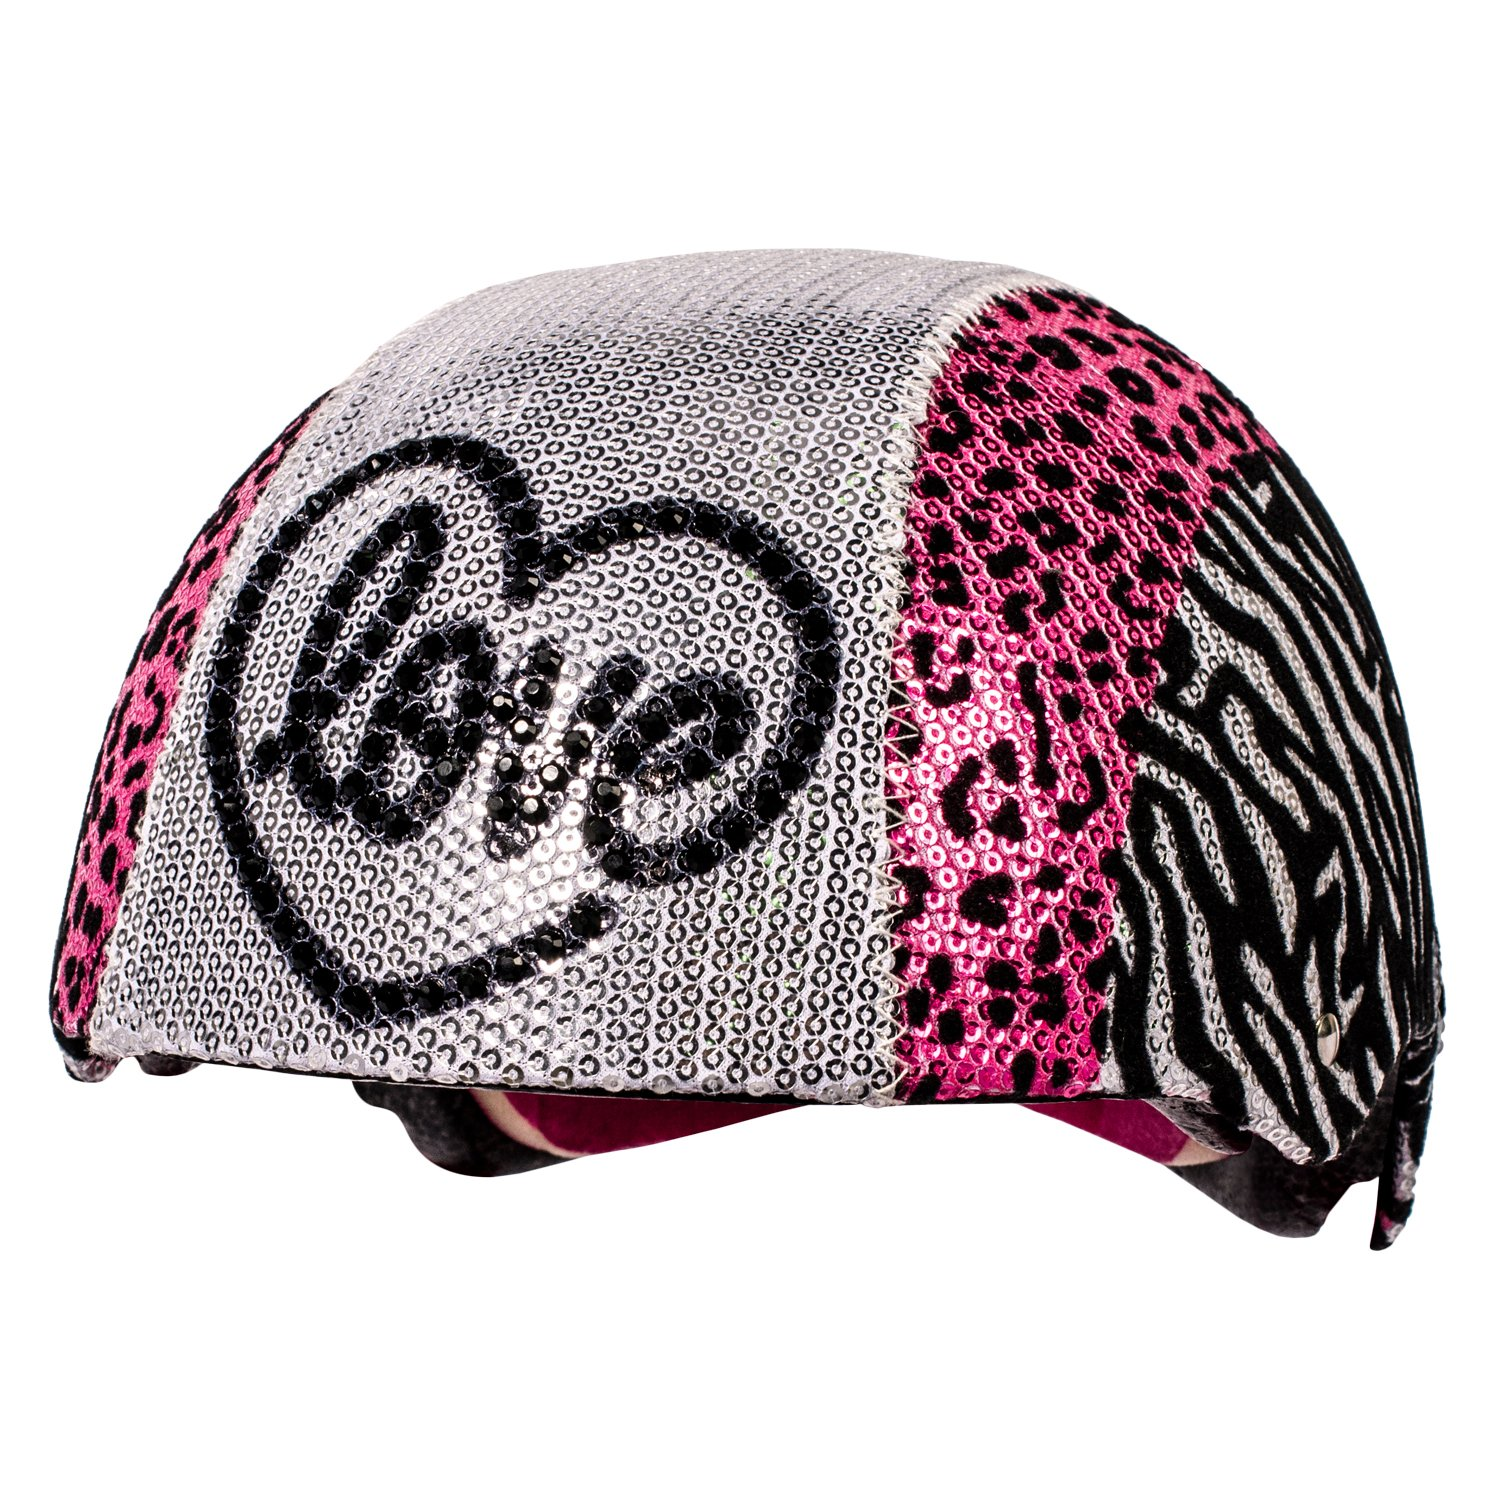 Raskullz Glam Gear Love Kids Bike Helmet Silver Sequins Zebra Pink Leopard Print for Cycling, One Size